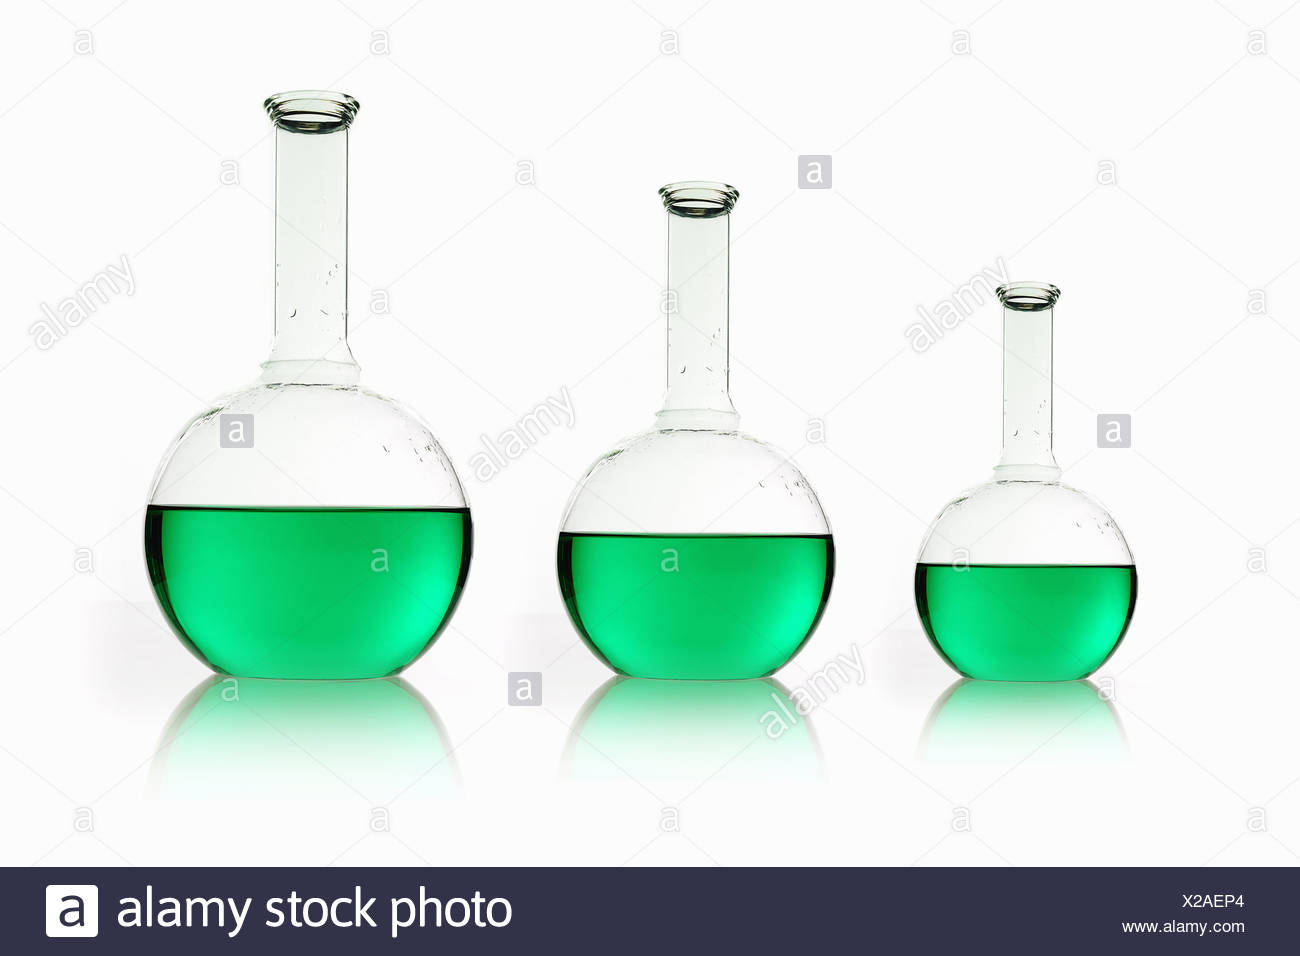 Three rounded shaped scientific chemical flasks holding green liquid, arranged in size order. - Stock Image